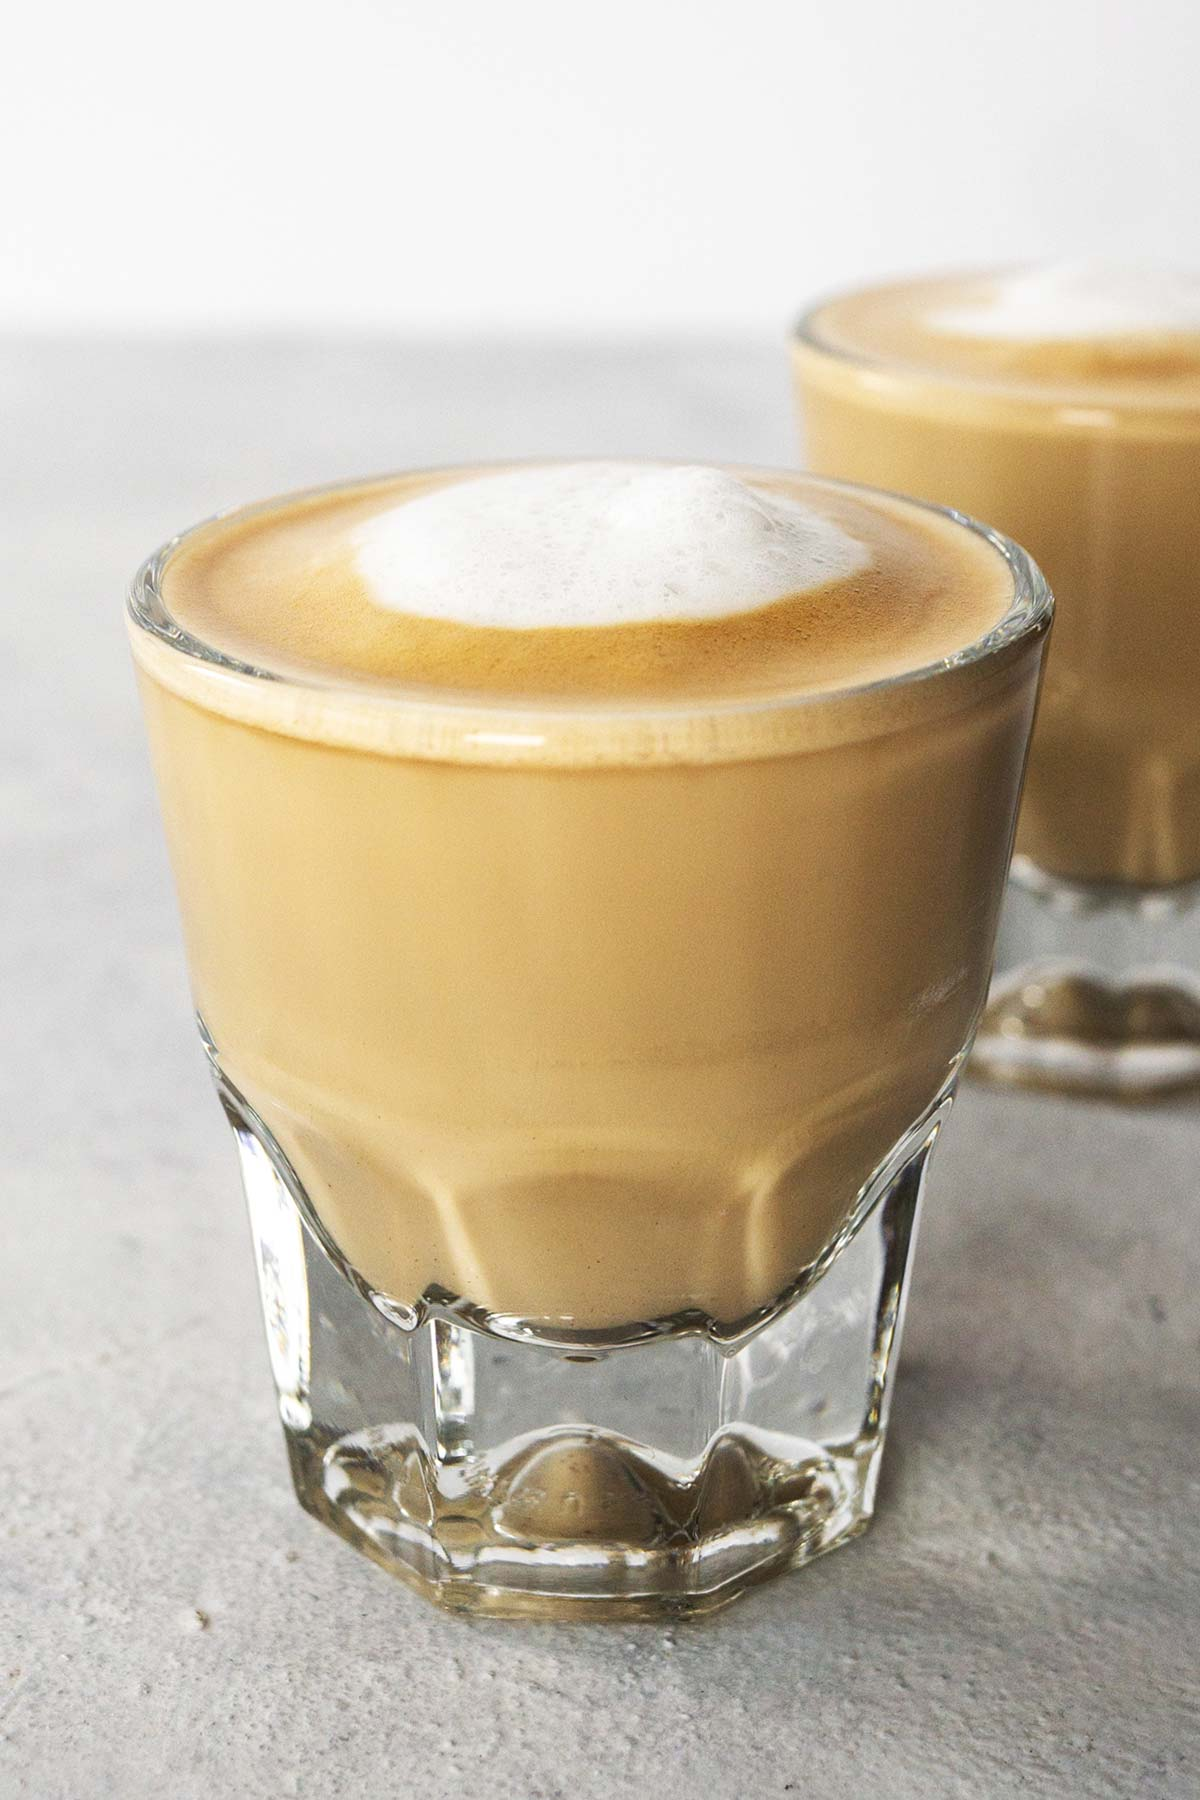 Two cortado drinks in glass cups.